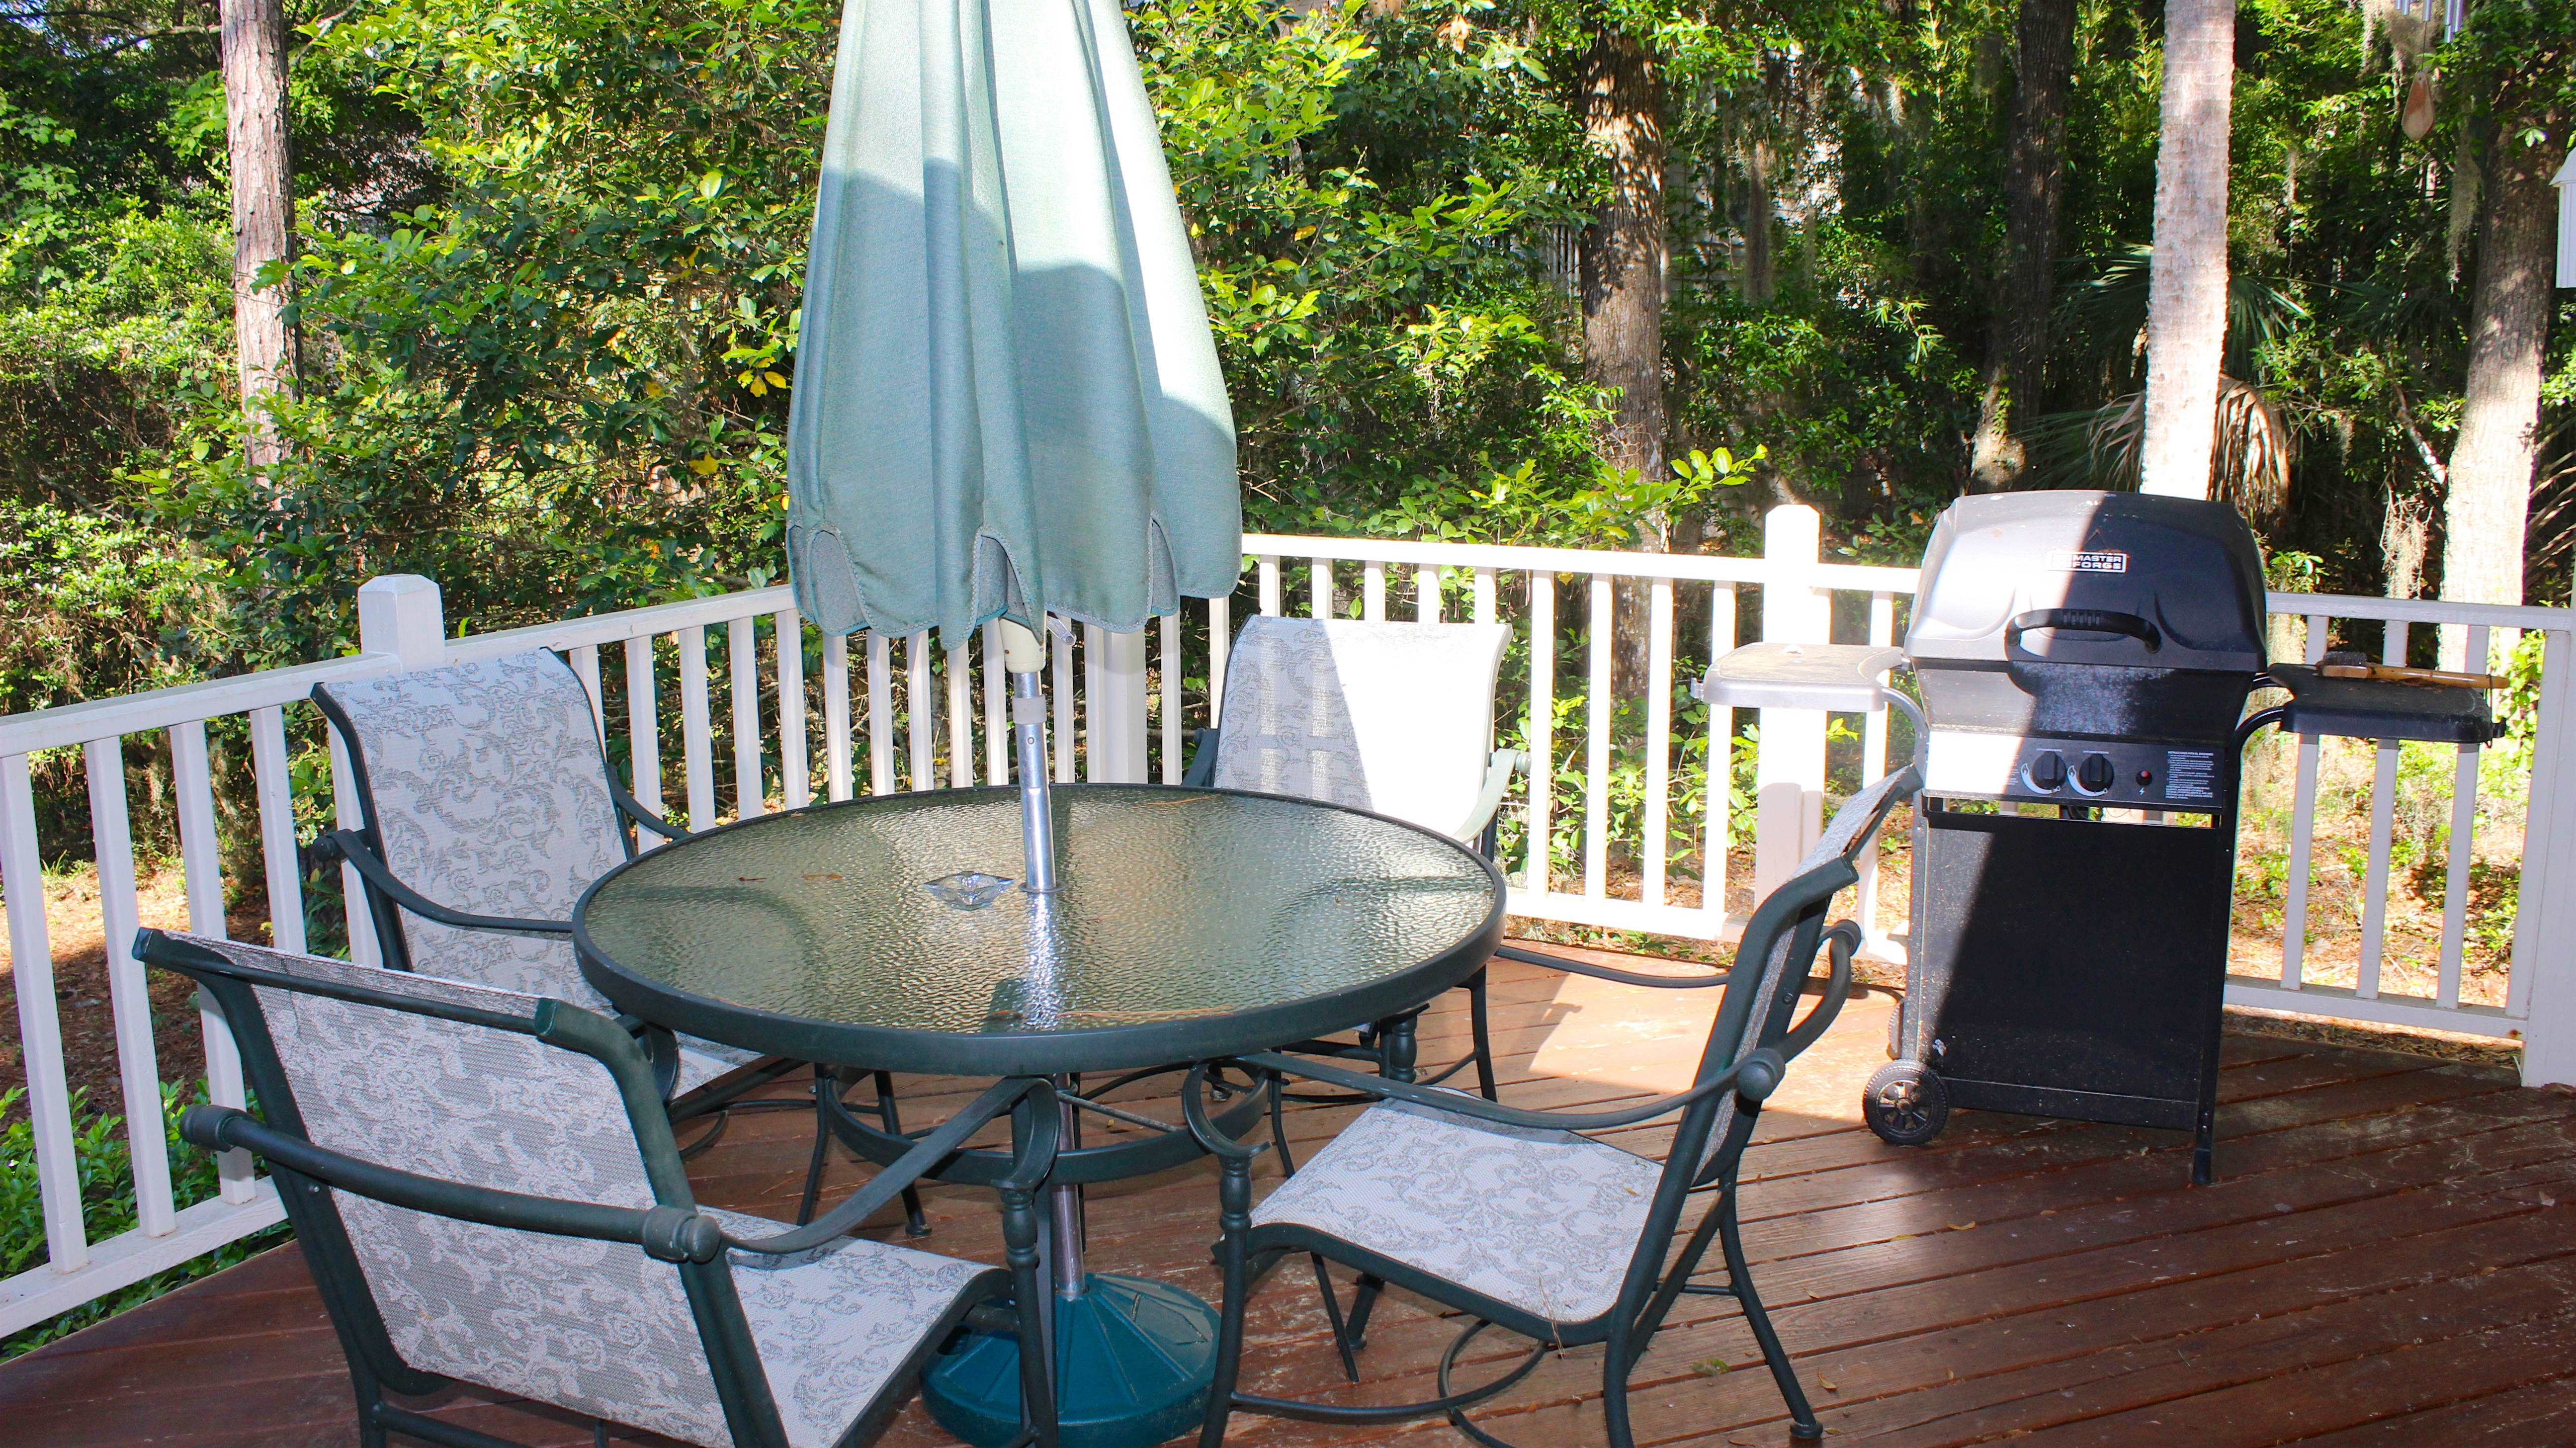 Grill on the deck and dine under the sun.